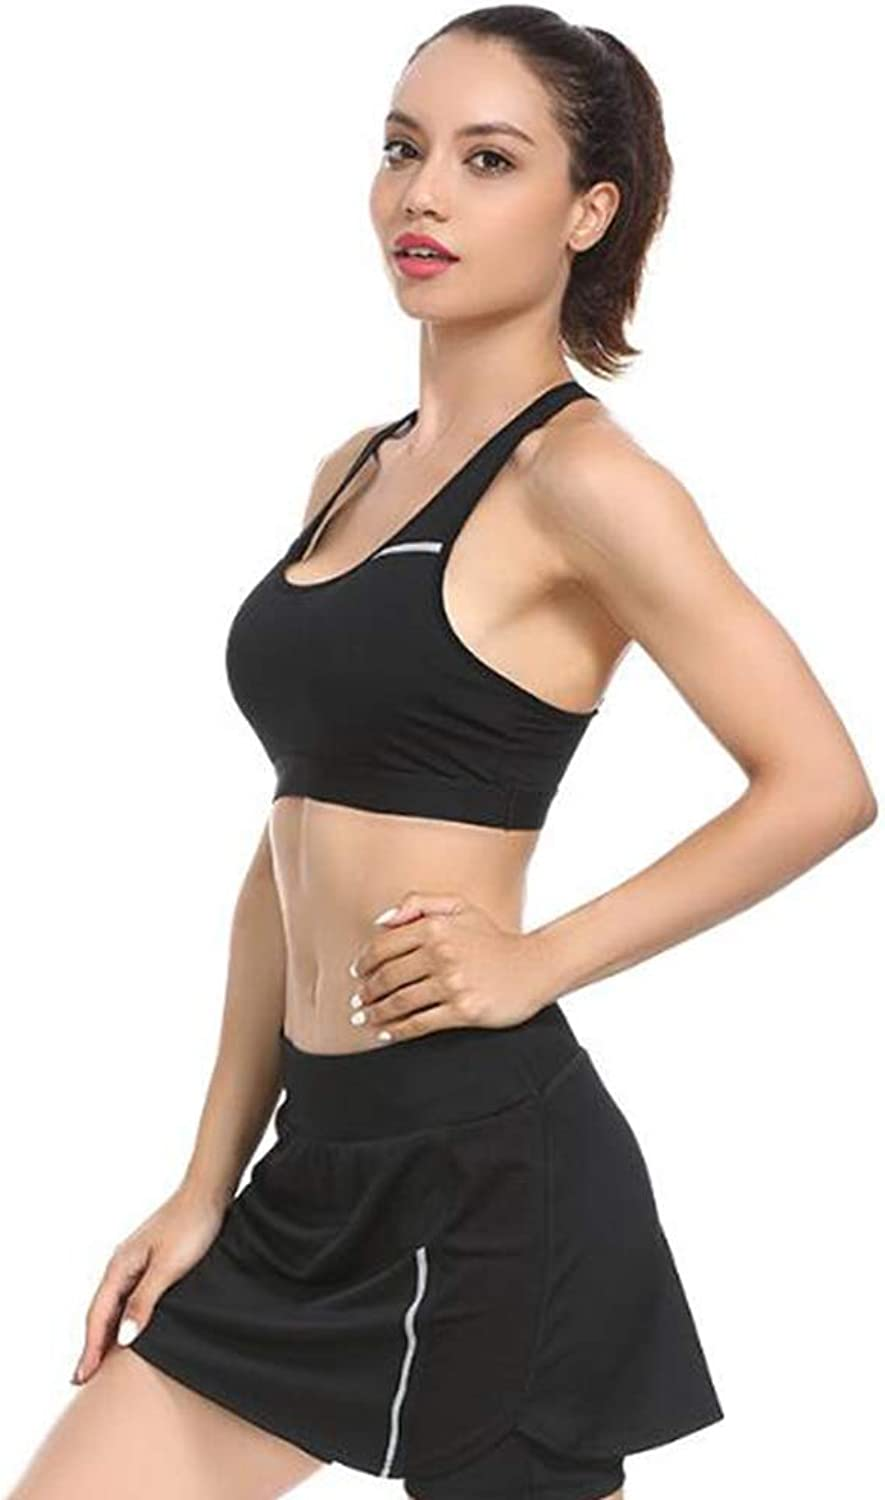 Sports Sweatshirt Sets for Women,Loose Slim Tracksuit Sweatshirt with a Short SkirtPants Casual Suit Gym Yoga Workout Running